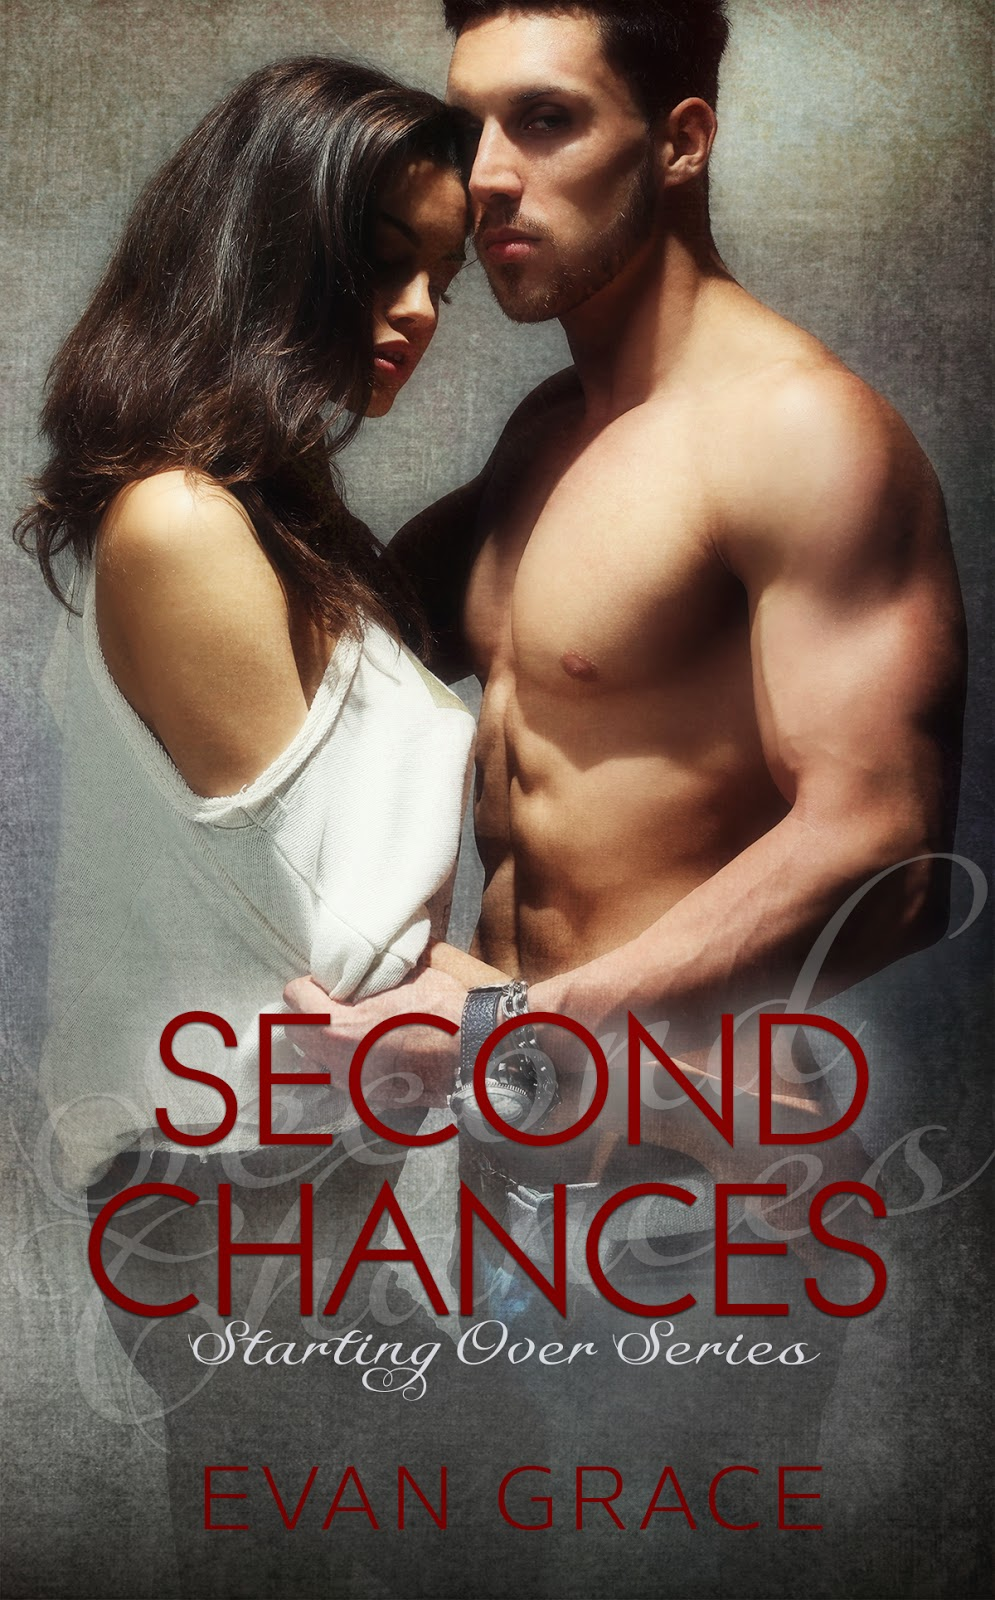 https://www.goodreads.com/book/show/20614802-second-chances